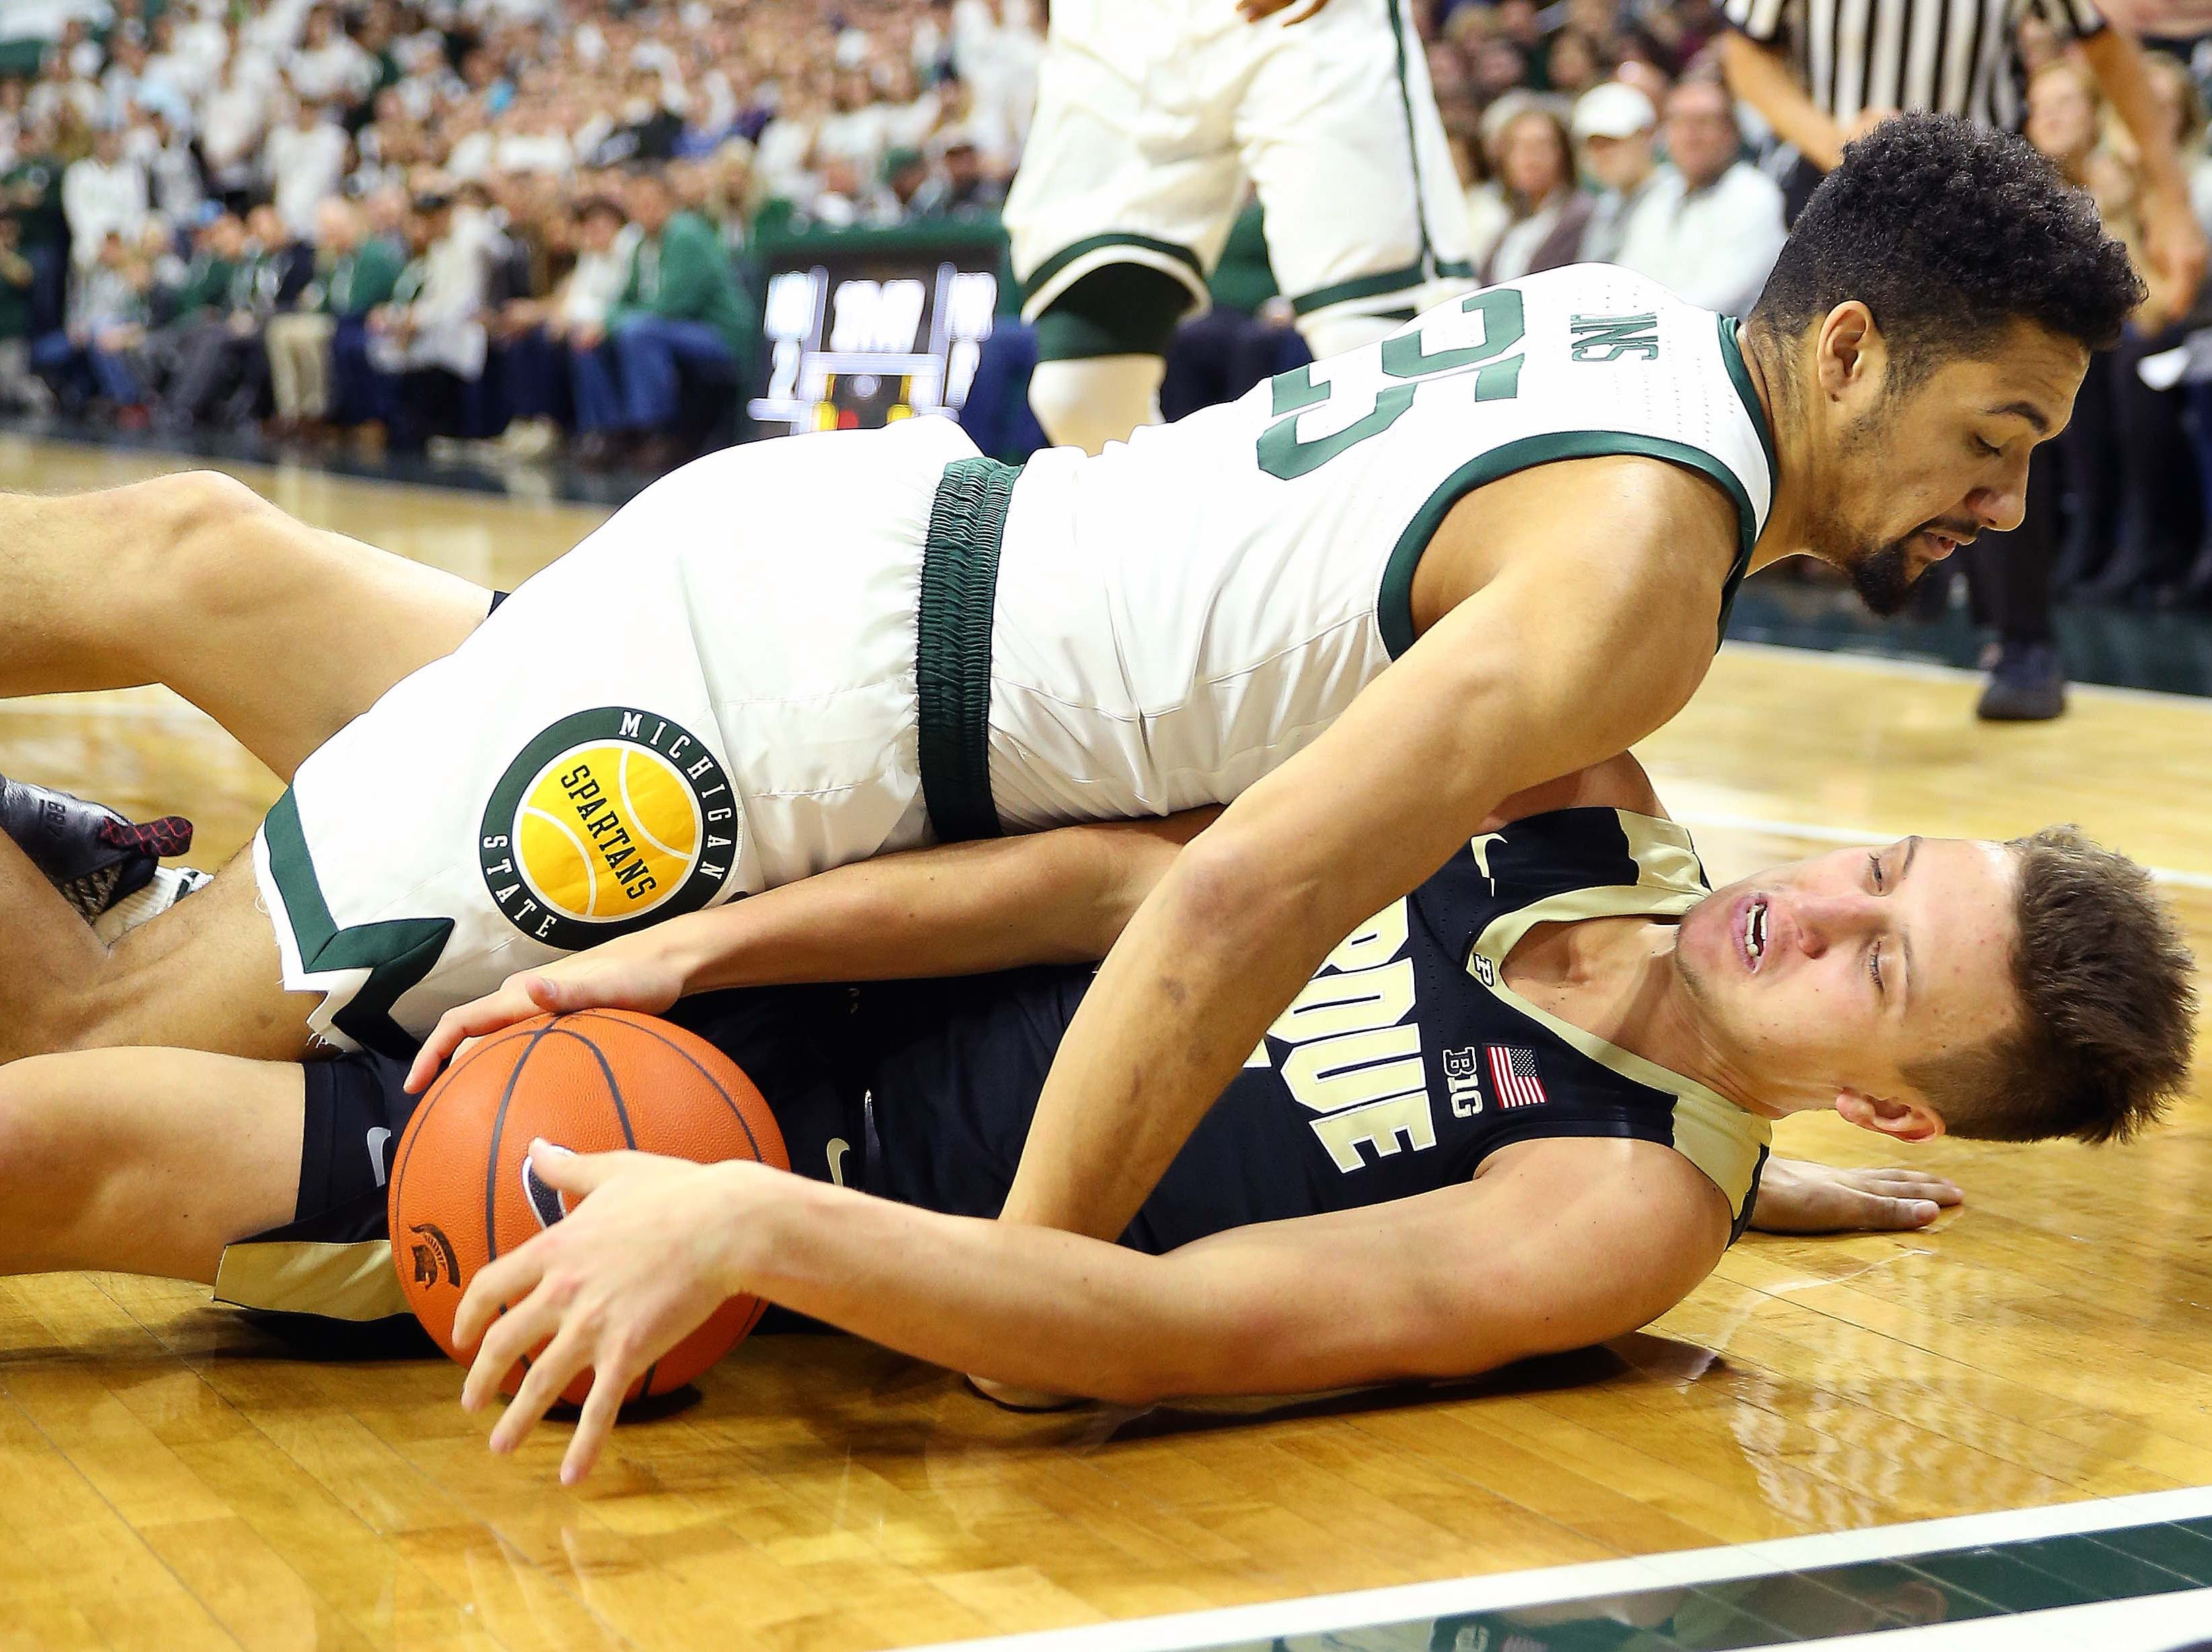 Jan 8, 2019; East Lansing, MI, USA; Purdue Boilermakers forward Aaron Wheeler (1) and Michigan State Spartans forward Kenny Goins (25) fight for a loose ball during the first half of a game at the Breslin Center. Mandatory Credit: Mike Carter-USA TODAY Sports